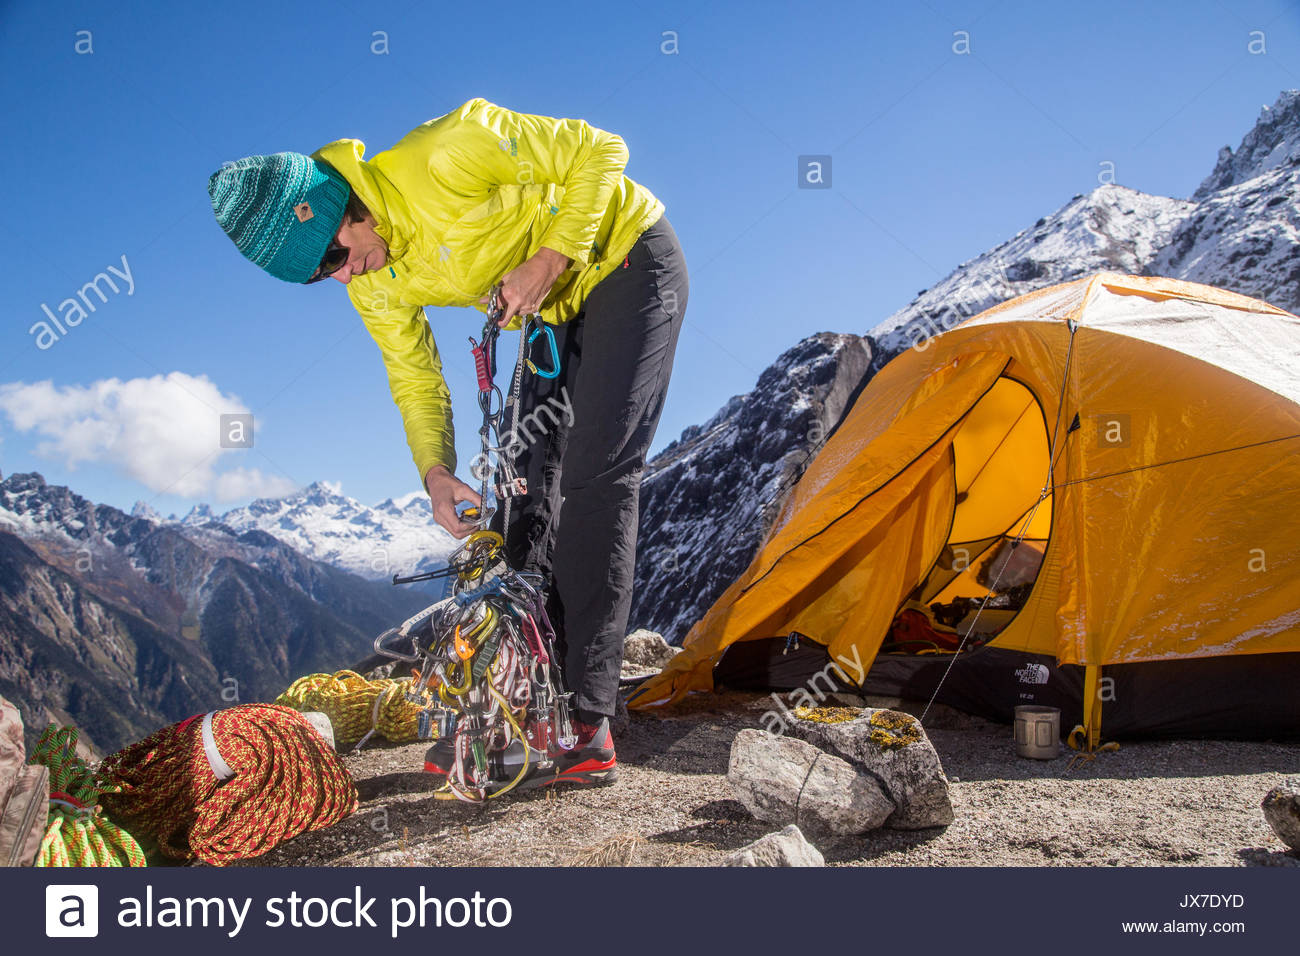 An expedition member checks carabiners, ropes and other equipment at the campsite. - Stock Image